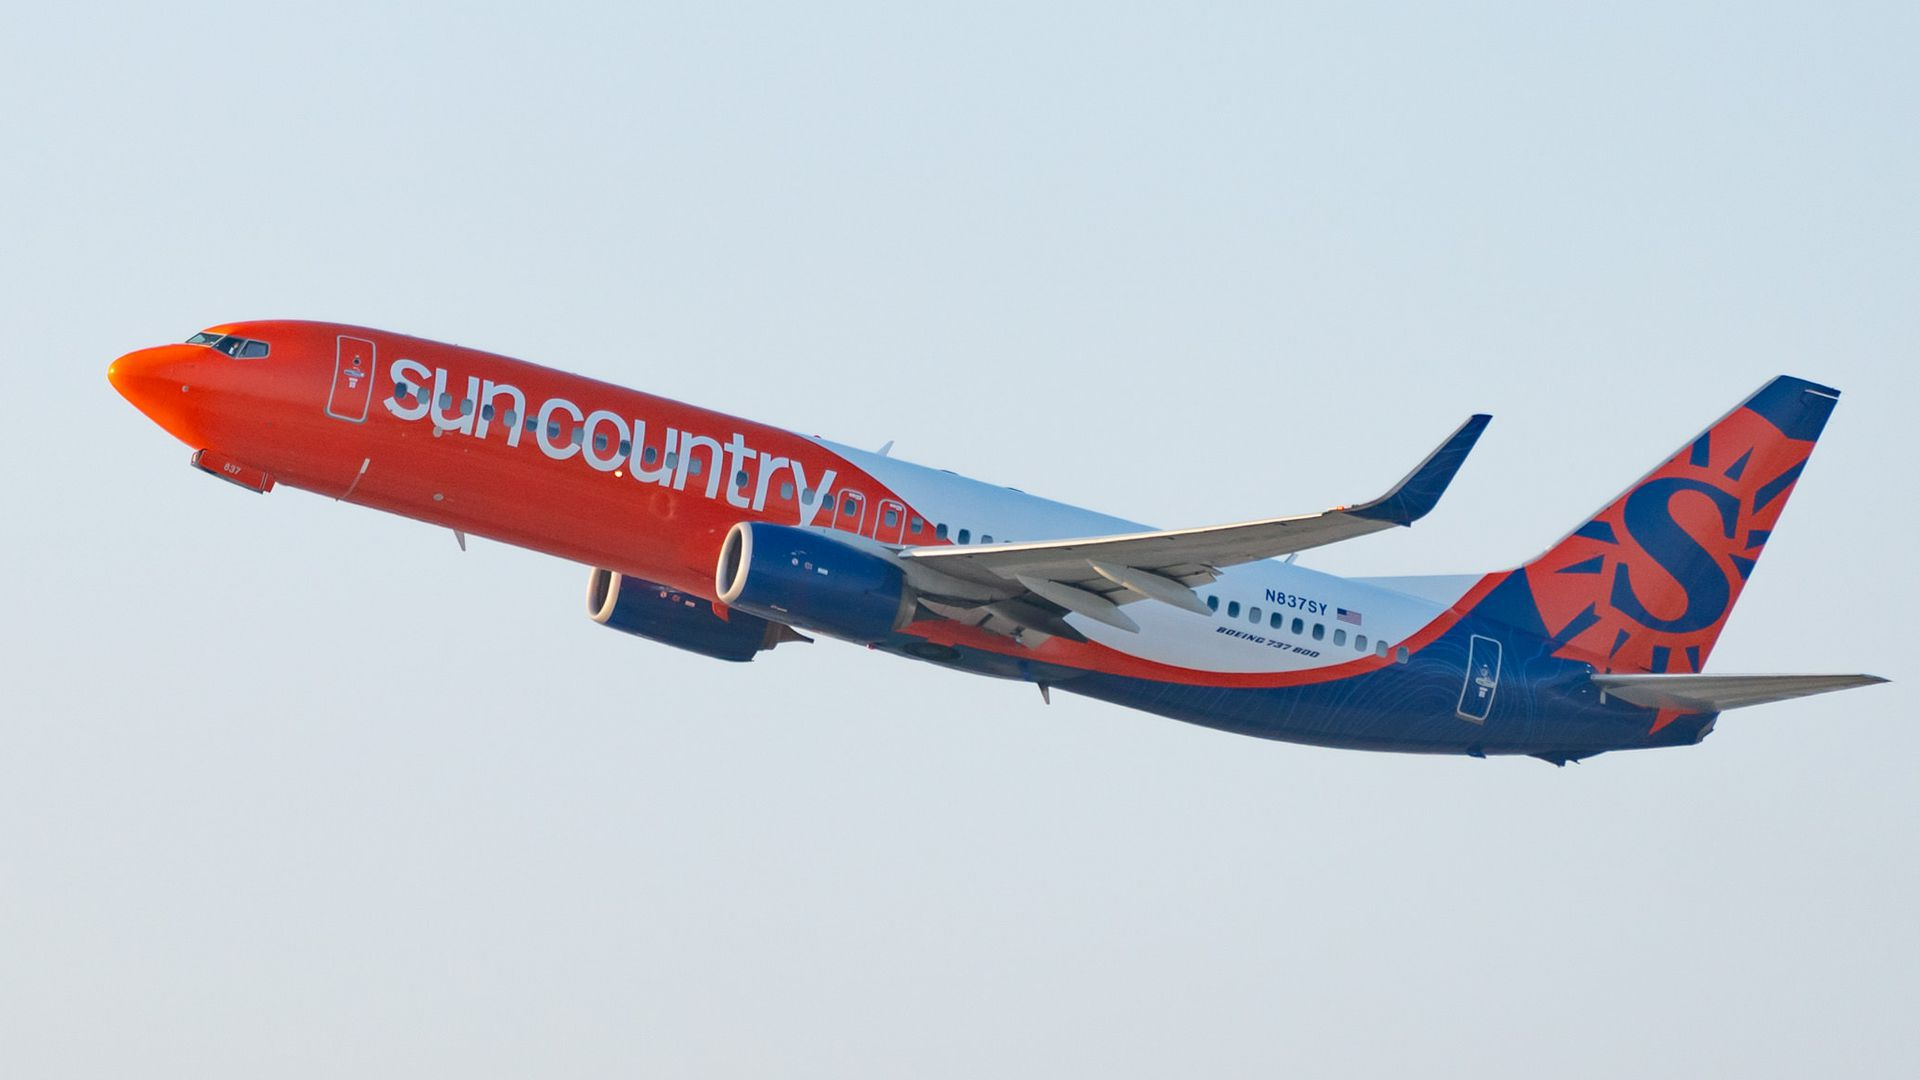 Picture of a Sun Country Airlines plane